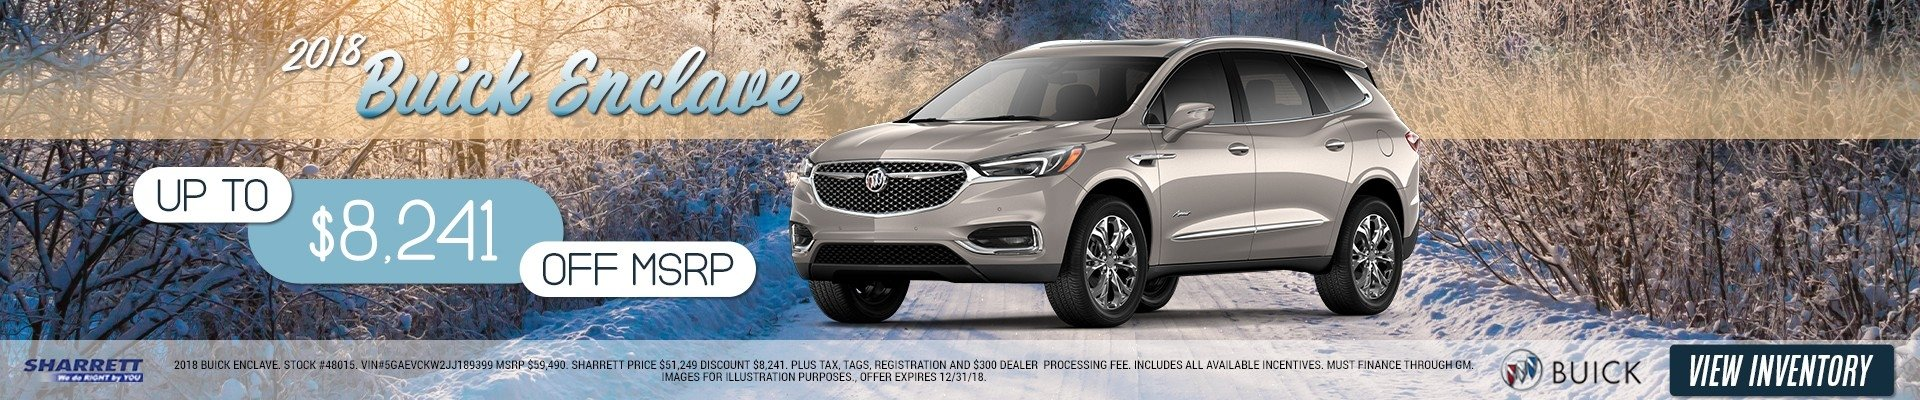 Up to $8,241 off MSRP on a 2018 Buick Enclave